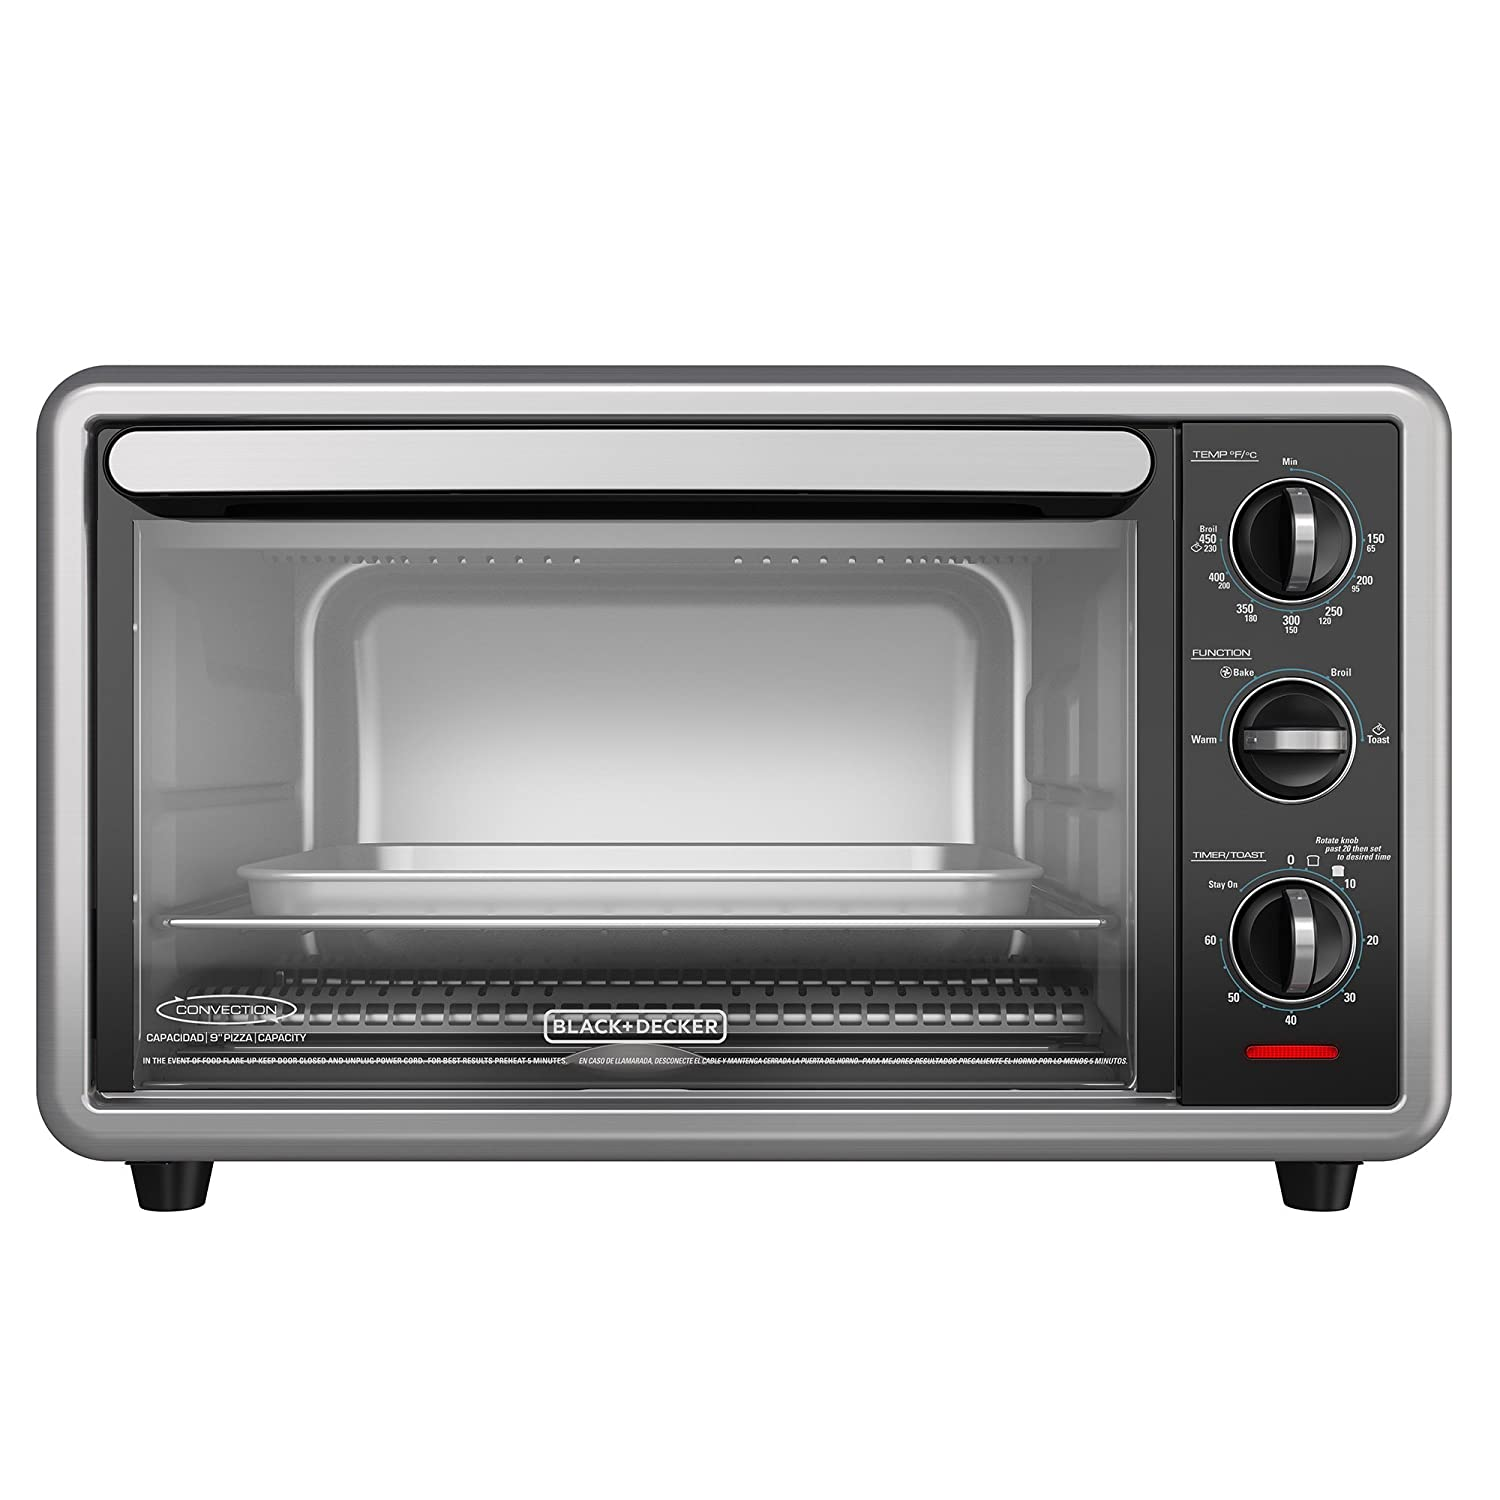 Amazon.com: BLACK+DECKER TO1216B 6-Slice Convection Countertop Toaster Oven, Includes Bake Pan, Broil Rack & Toasting Rack, Black Convection Toaster Oven: ...